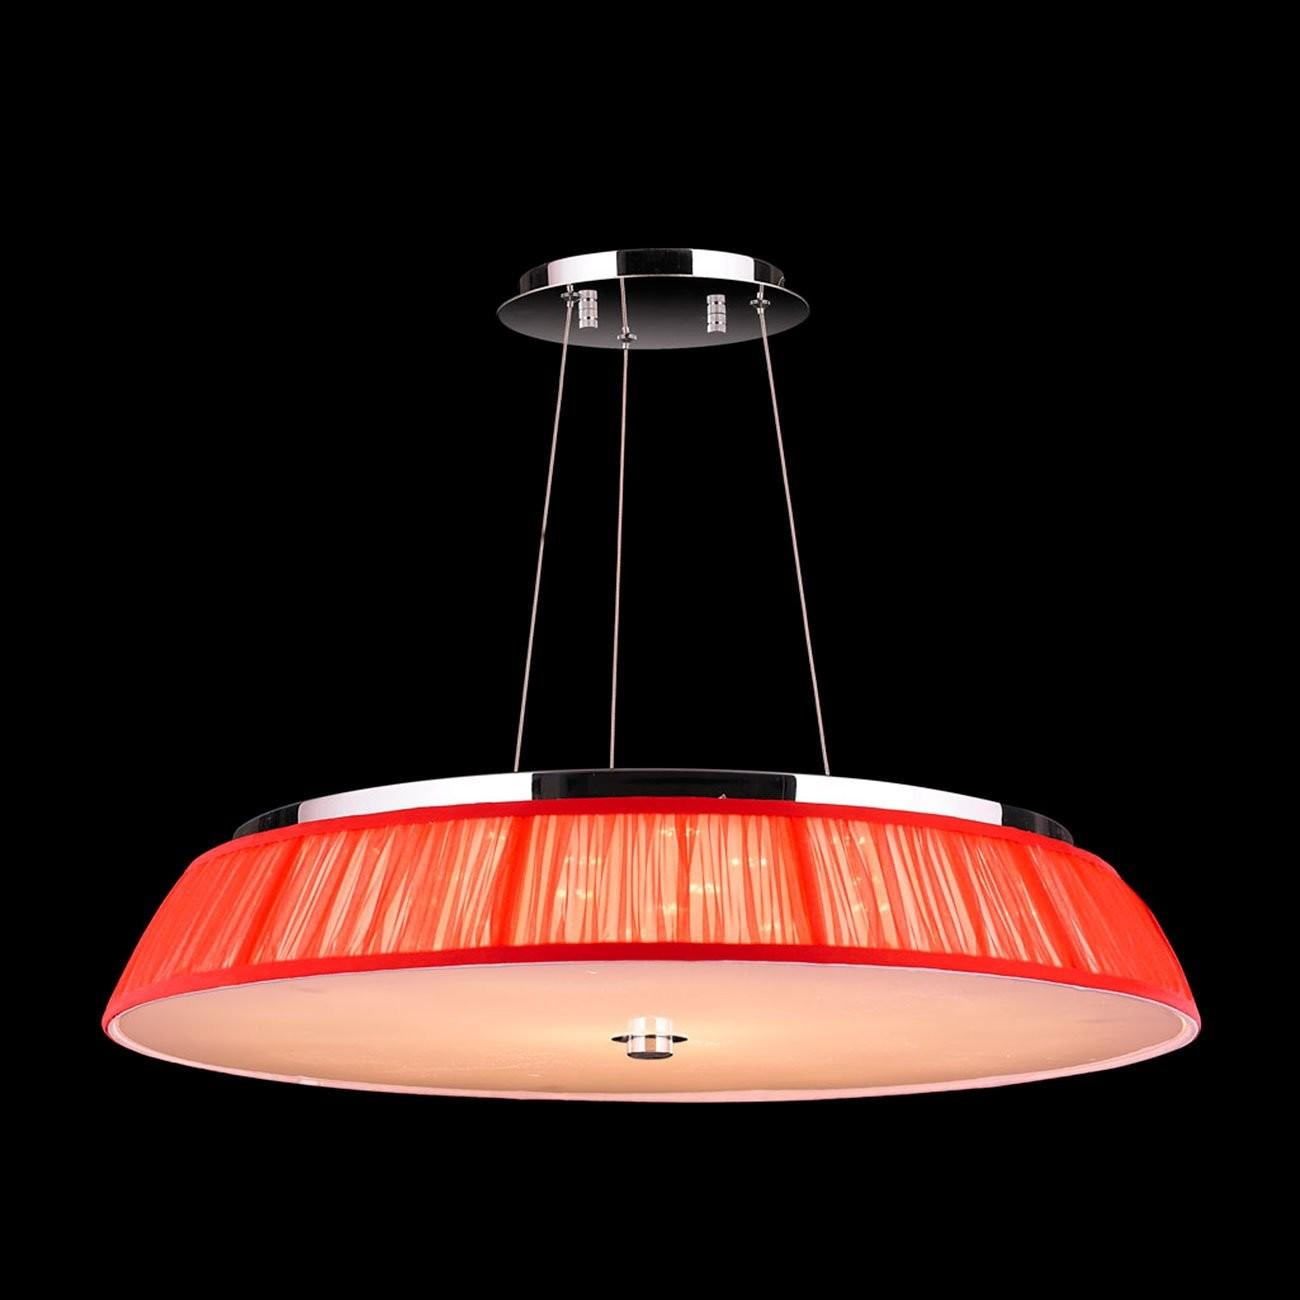 Worldwide Lighting Alice Light Drum Pendant